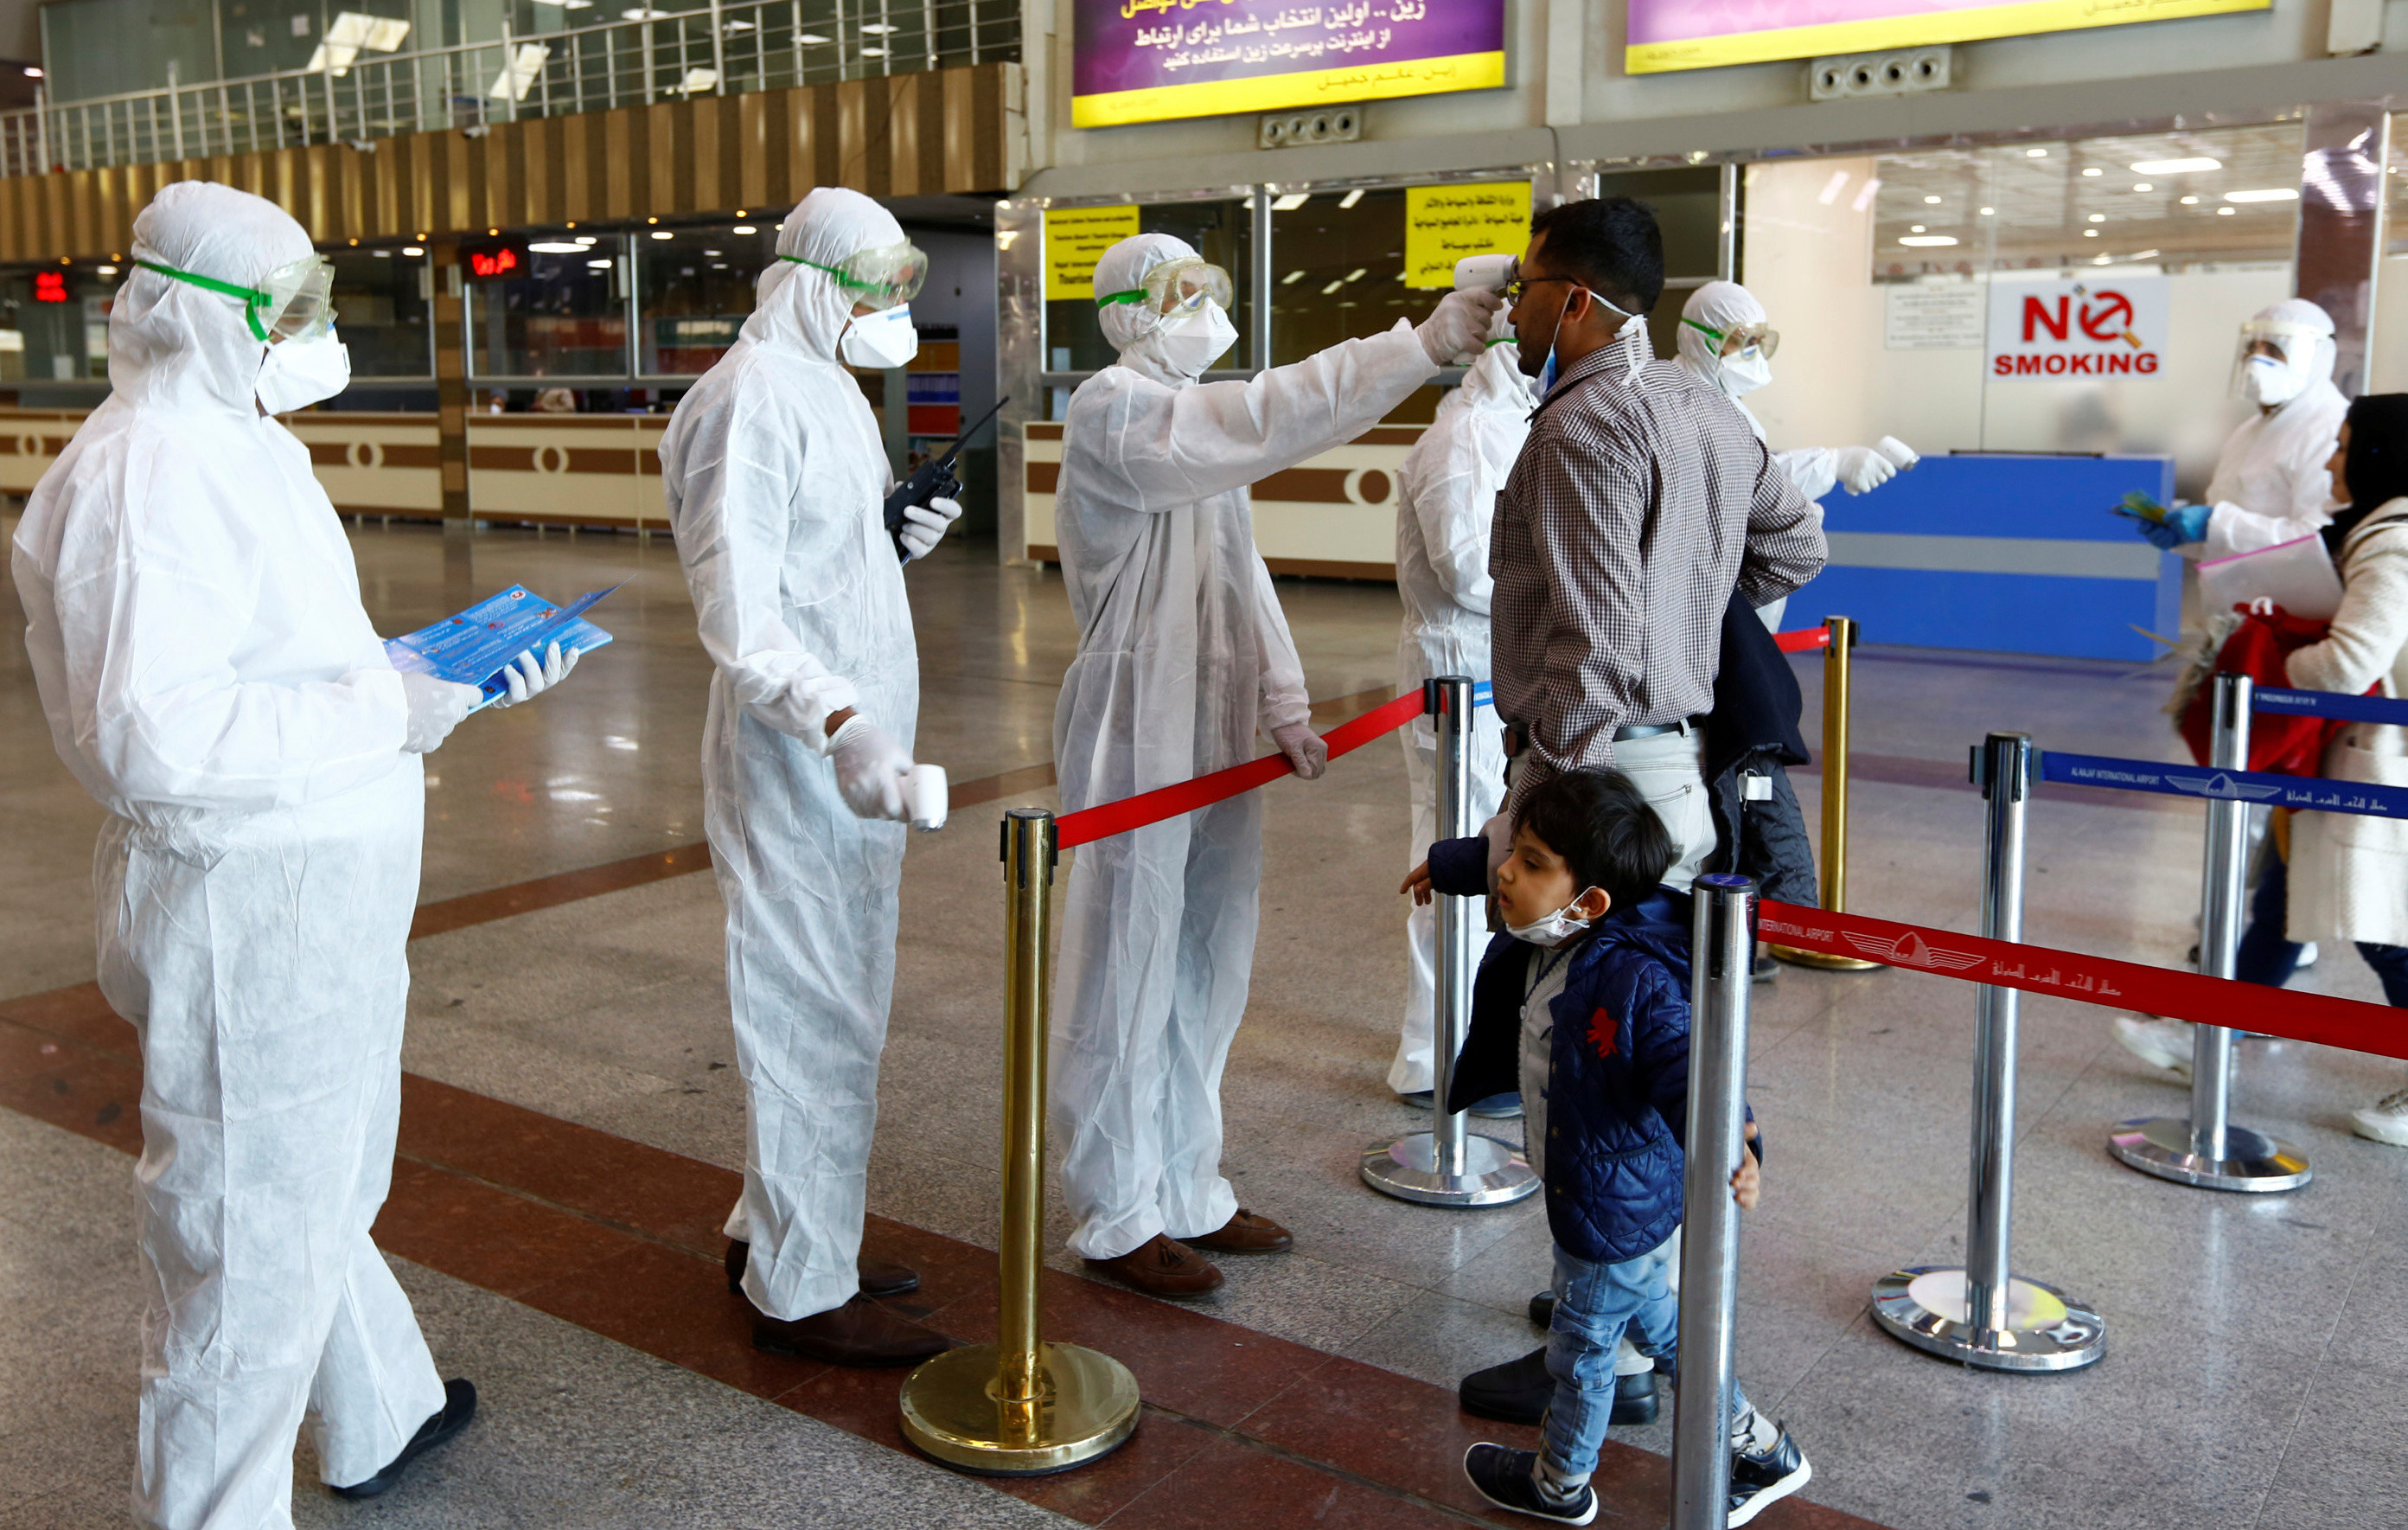 Iraqi medical staff check passengers' temperature, amid coronavirus outbreak, upon their arrival from Iran, at Najaf airport, Iraq March 5, 2020. REUTERS/Alaa al-Marjani - RC2QDF9IT3JA